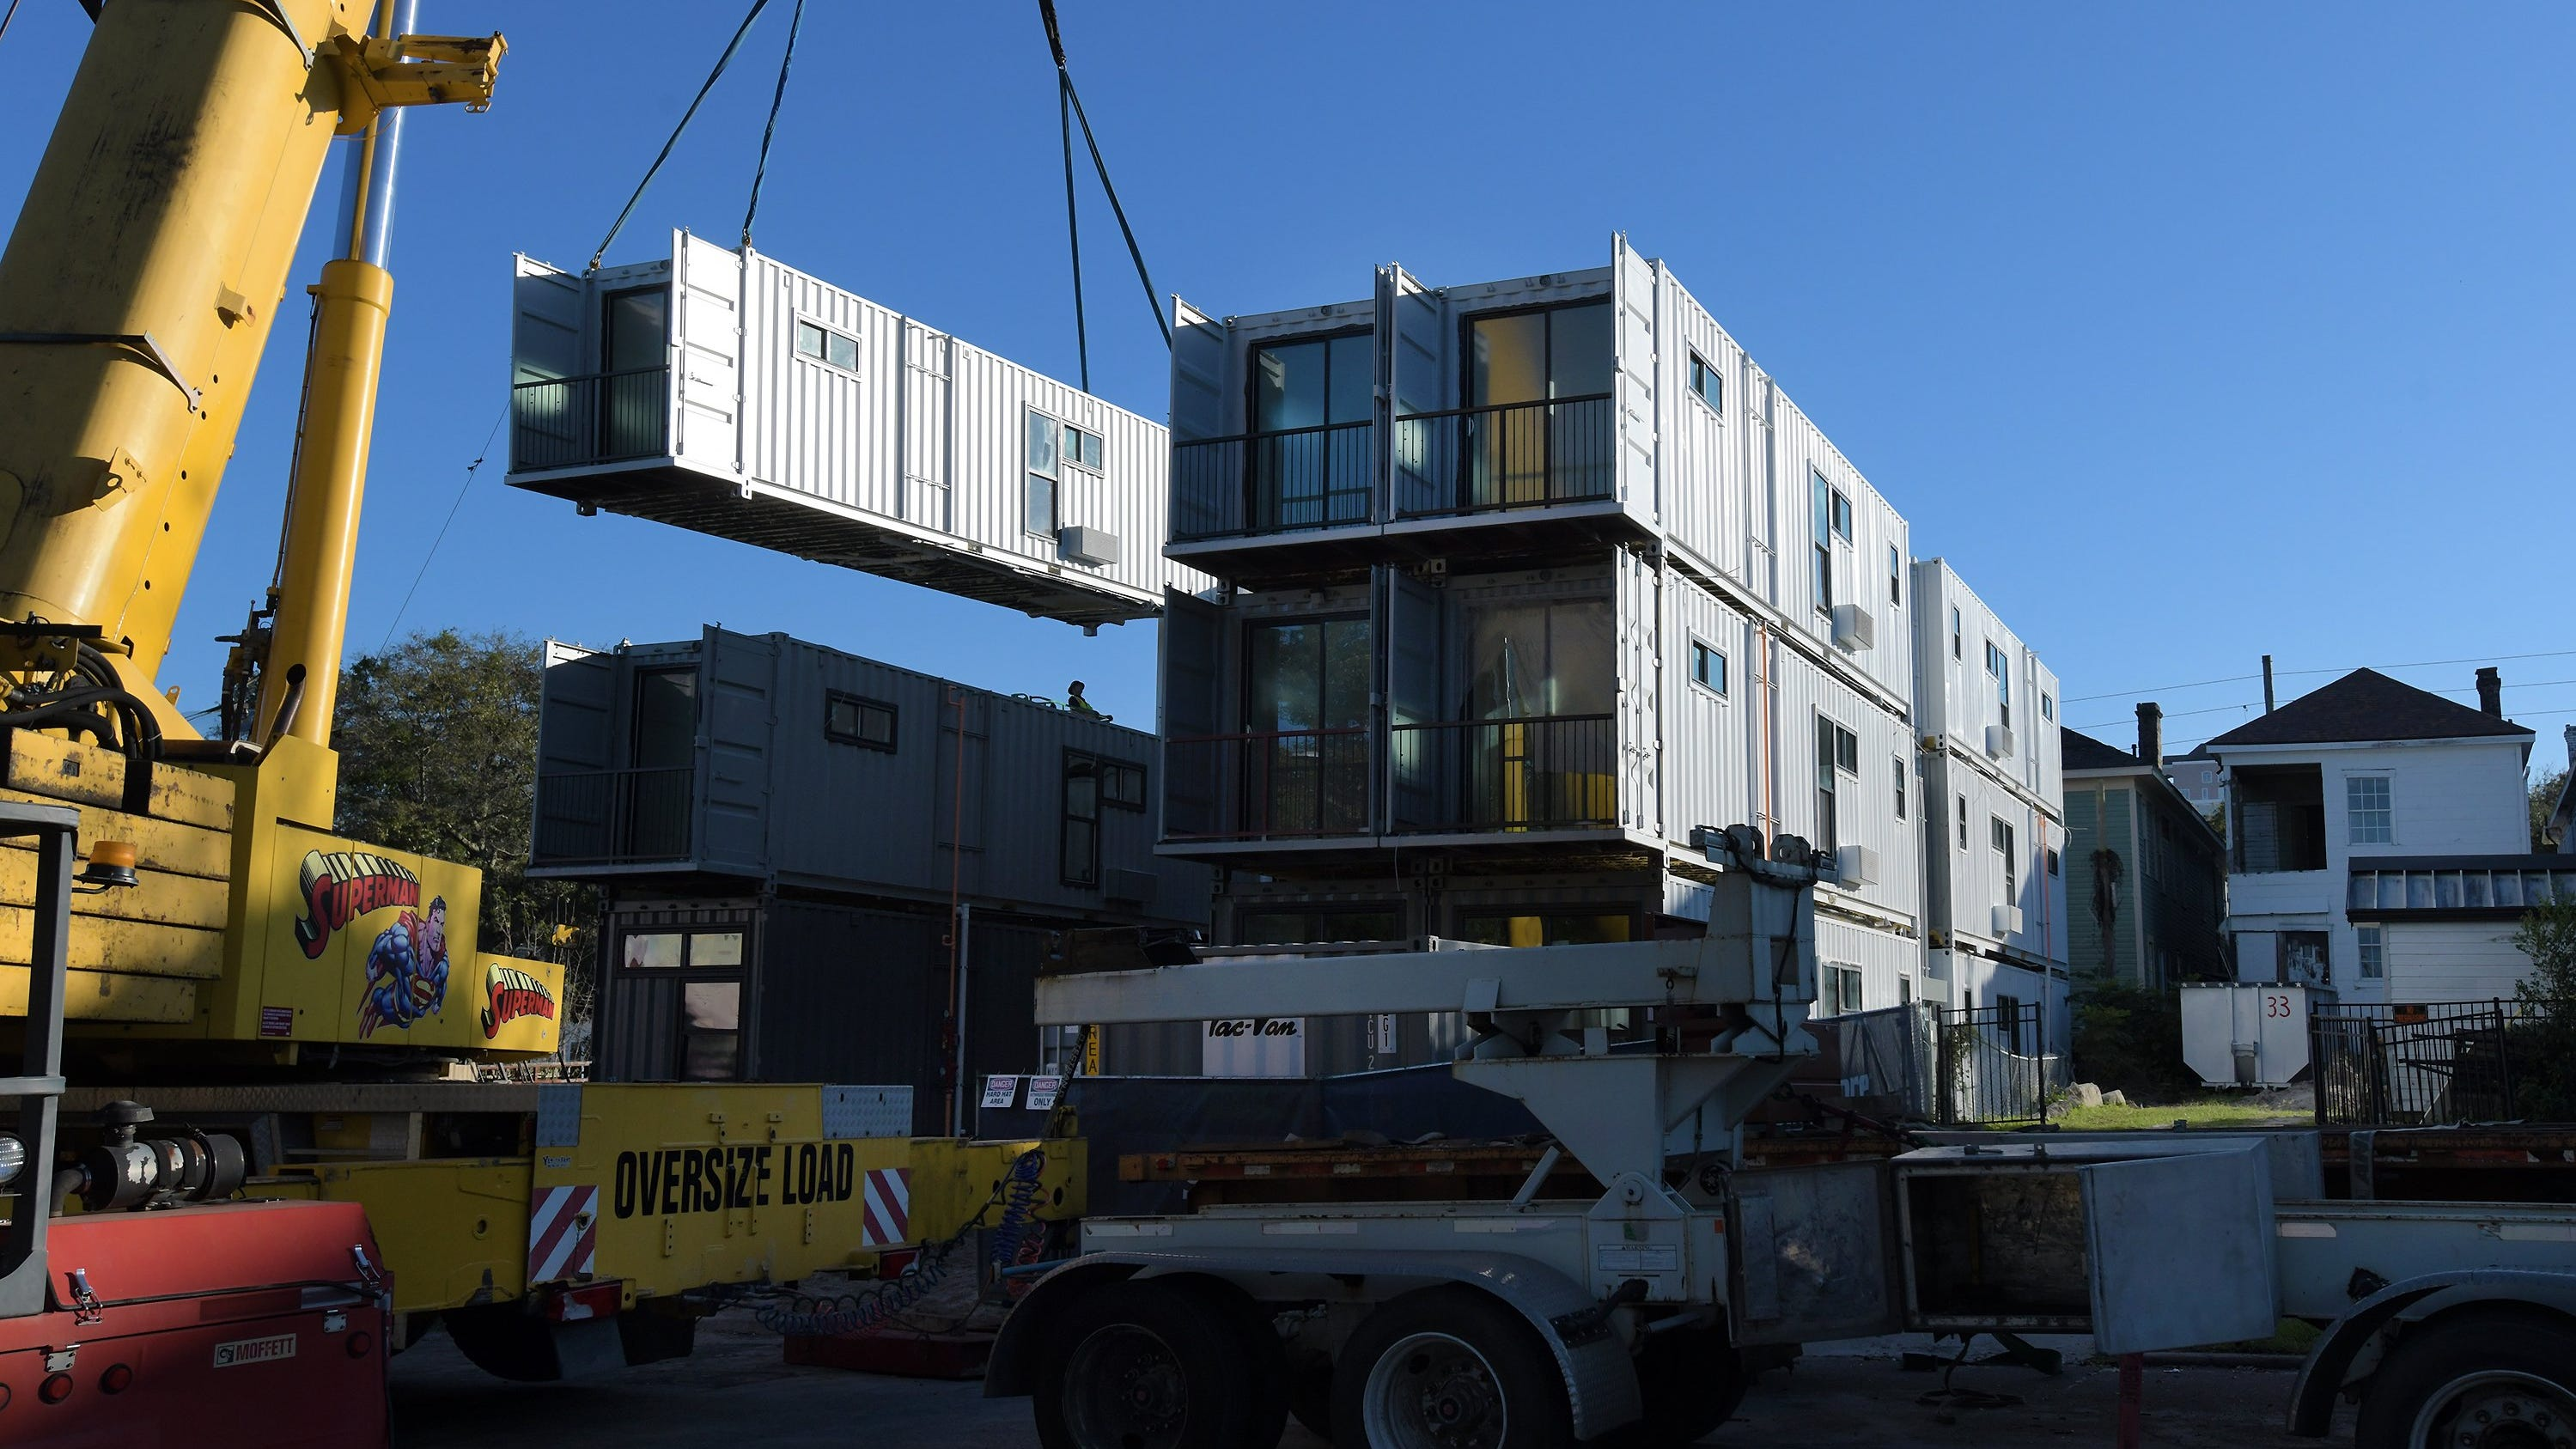 The creation of apartments and Airbnb rentals out of cargo containers is taking place on Ashley Street near more traditional homes in the downtown Cathedral District.